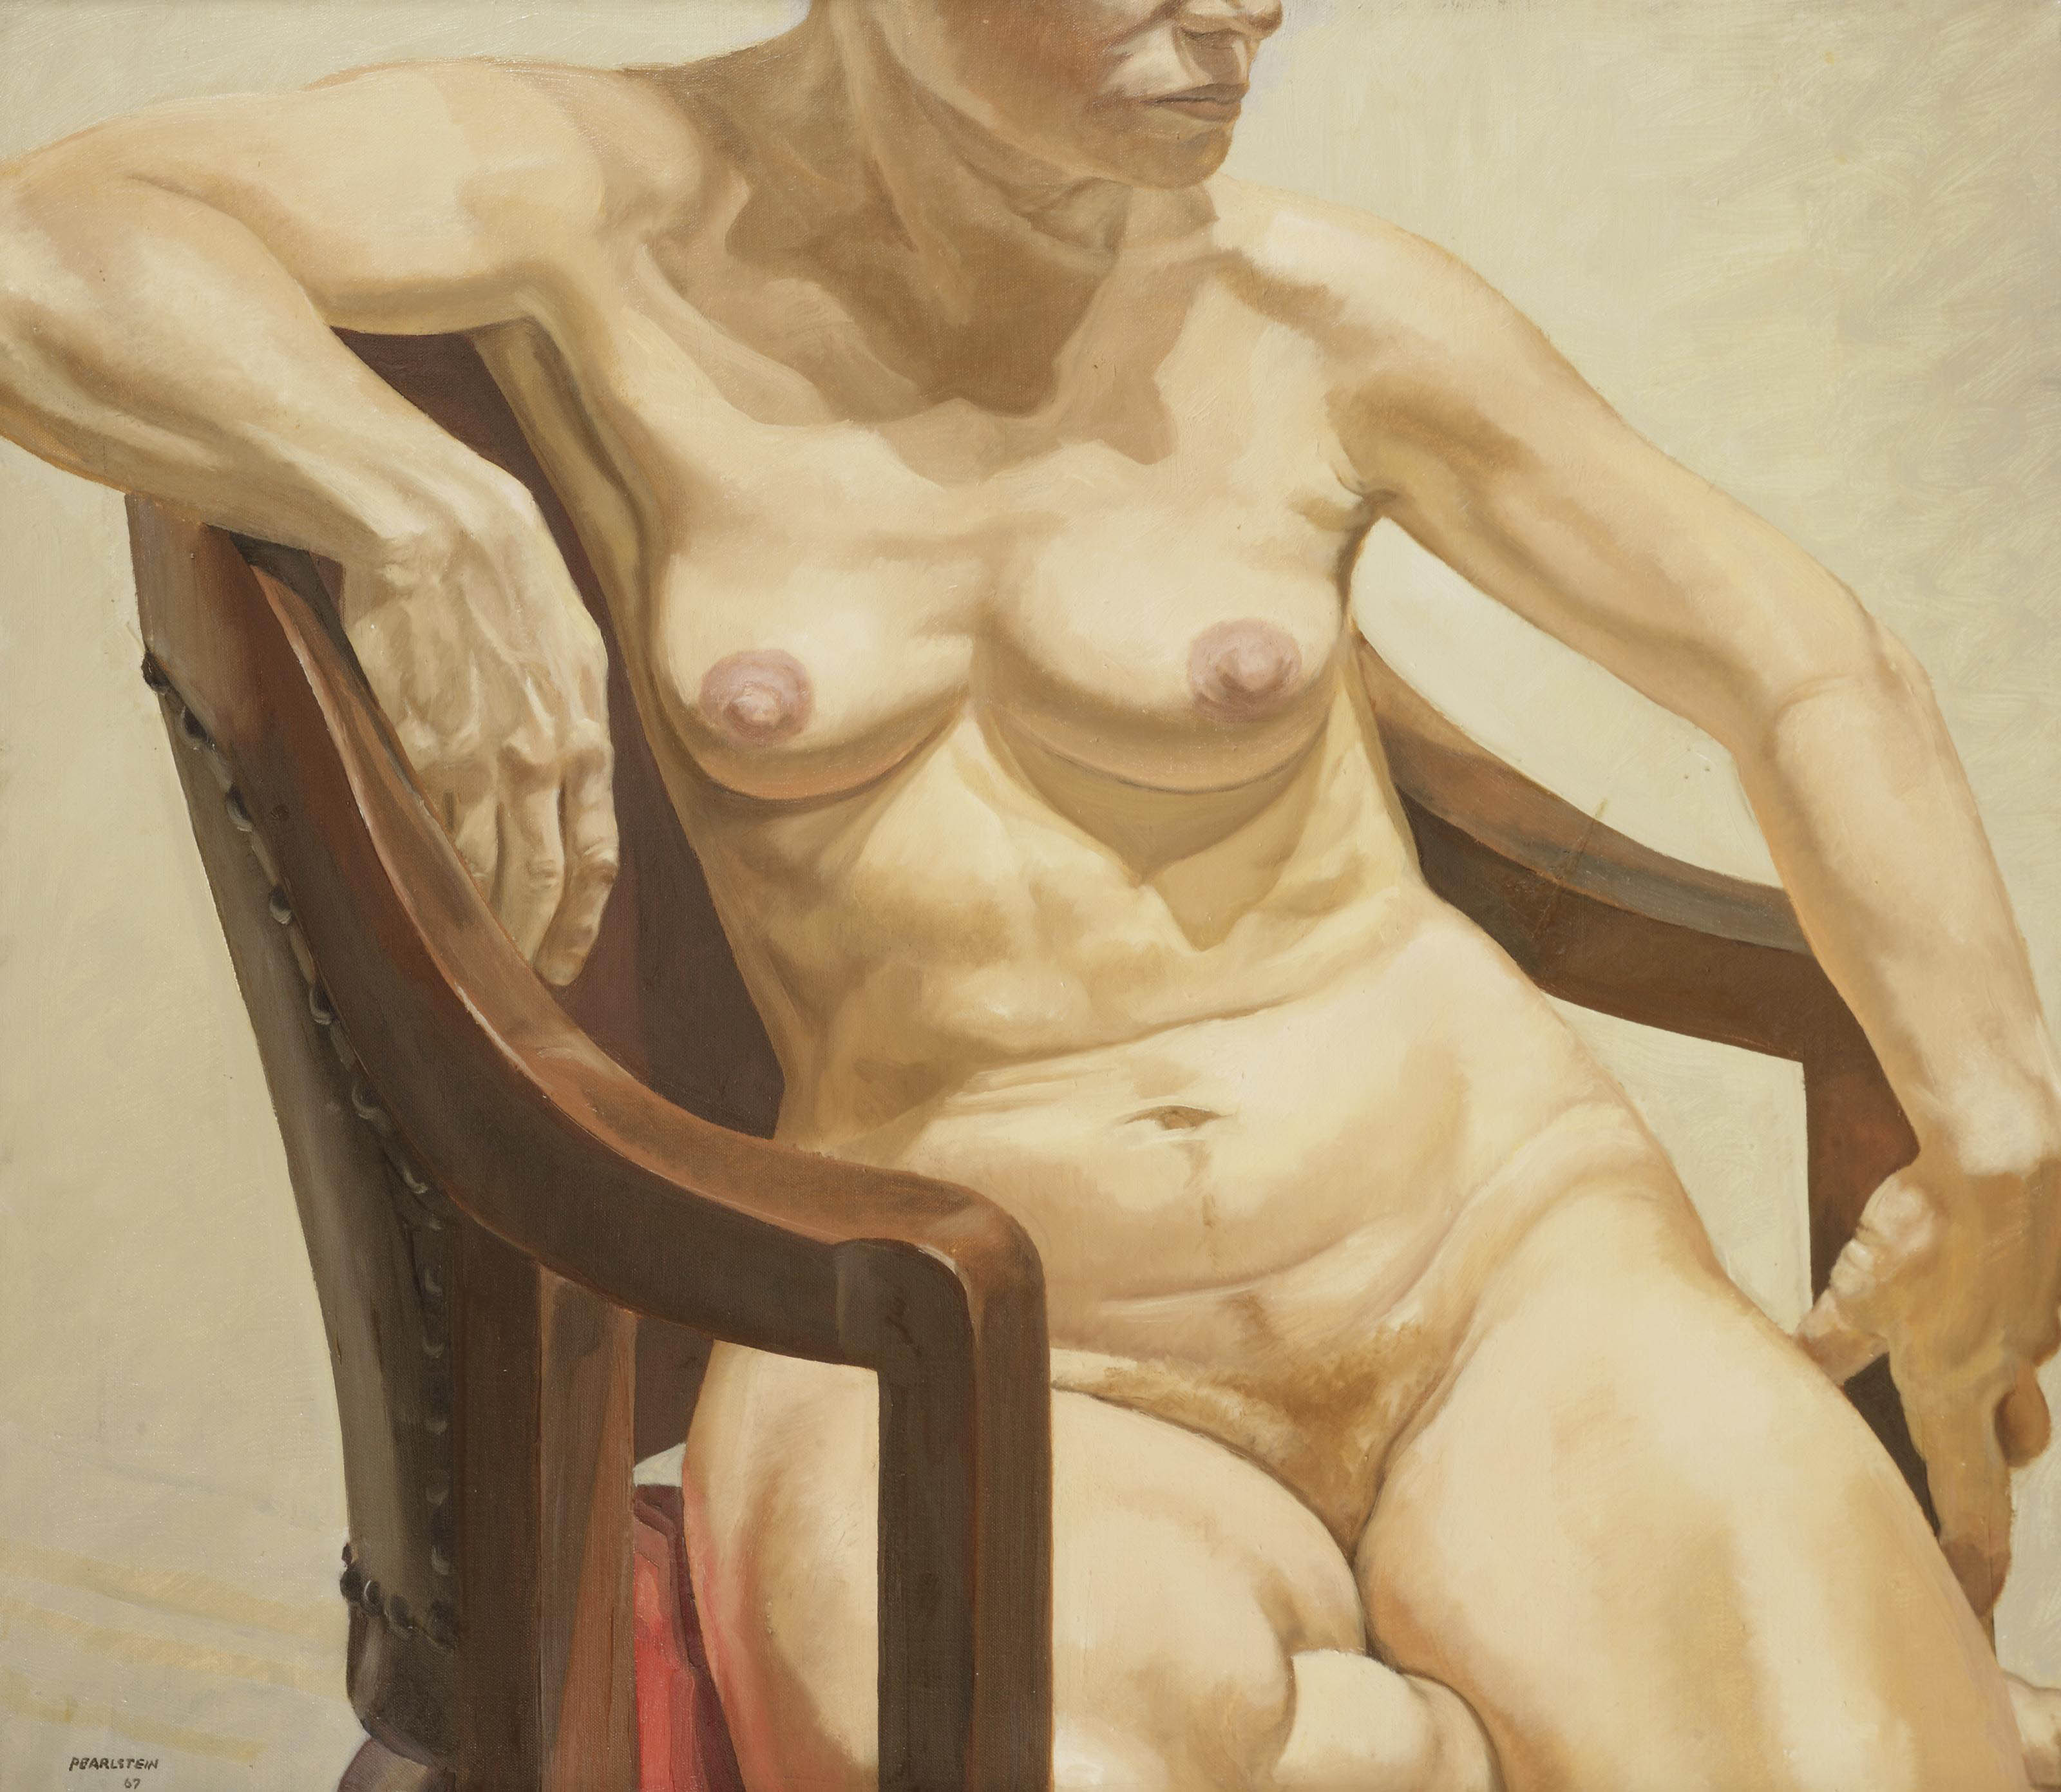 Model seated on chair